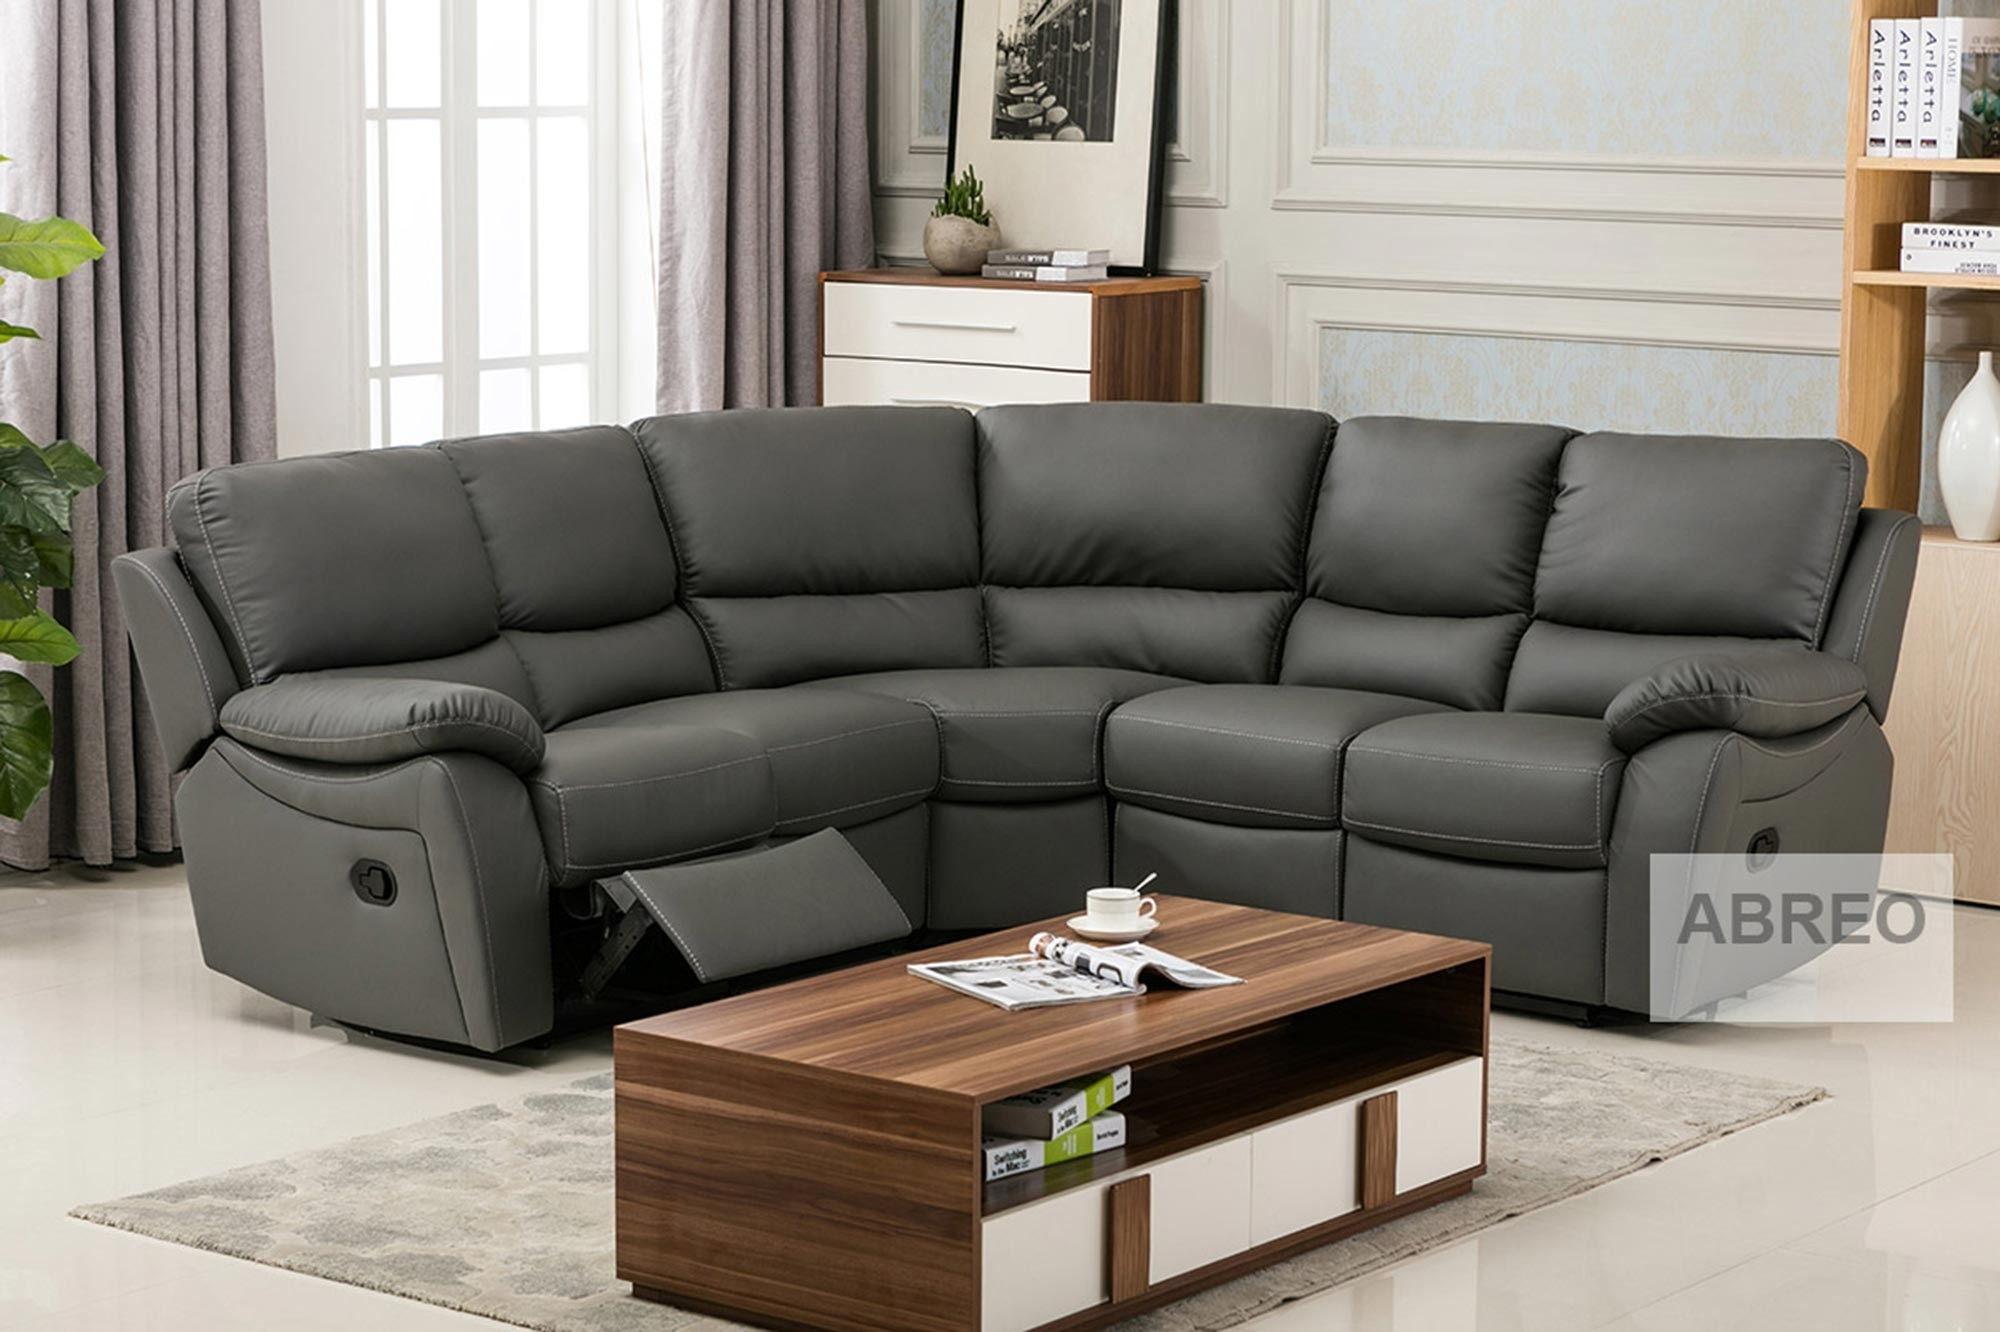 On Sale Ludlow Reclining Corner Sofa In Grey PU